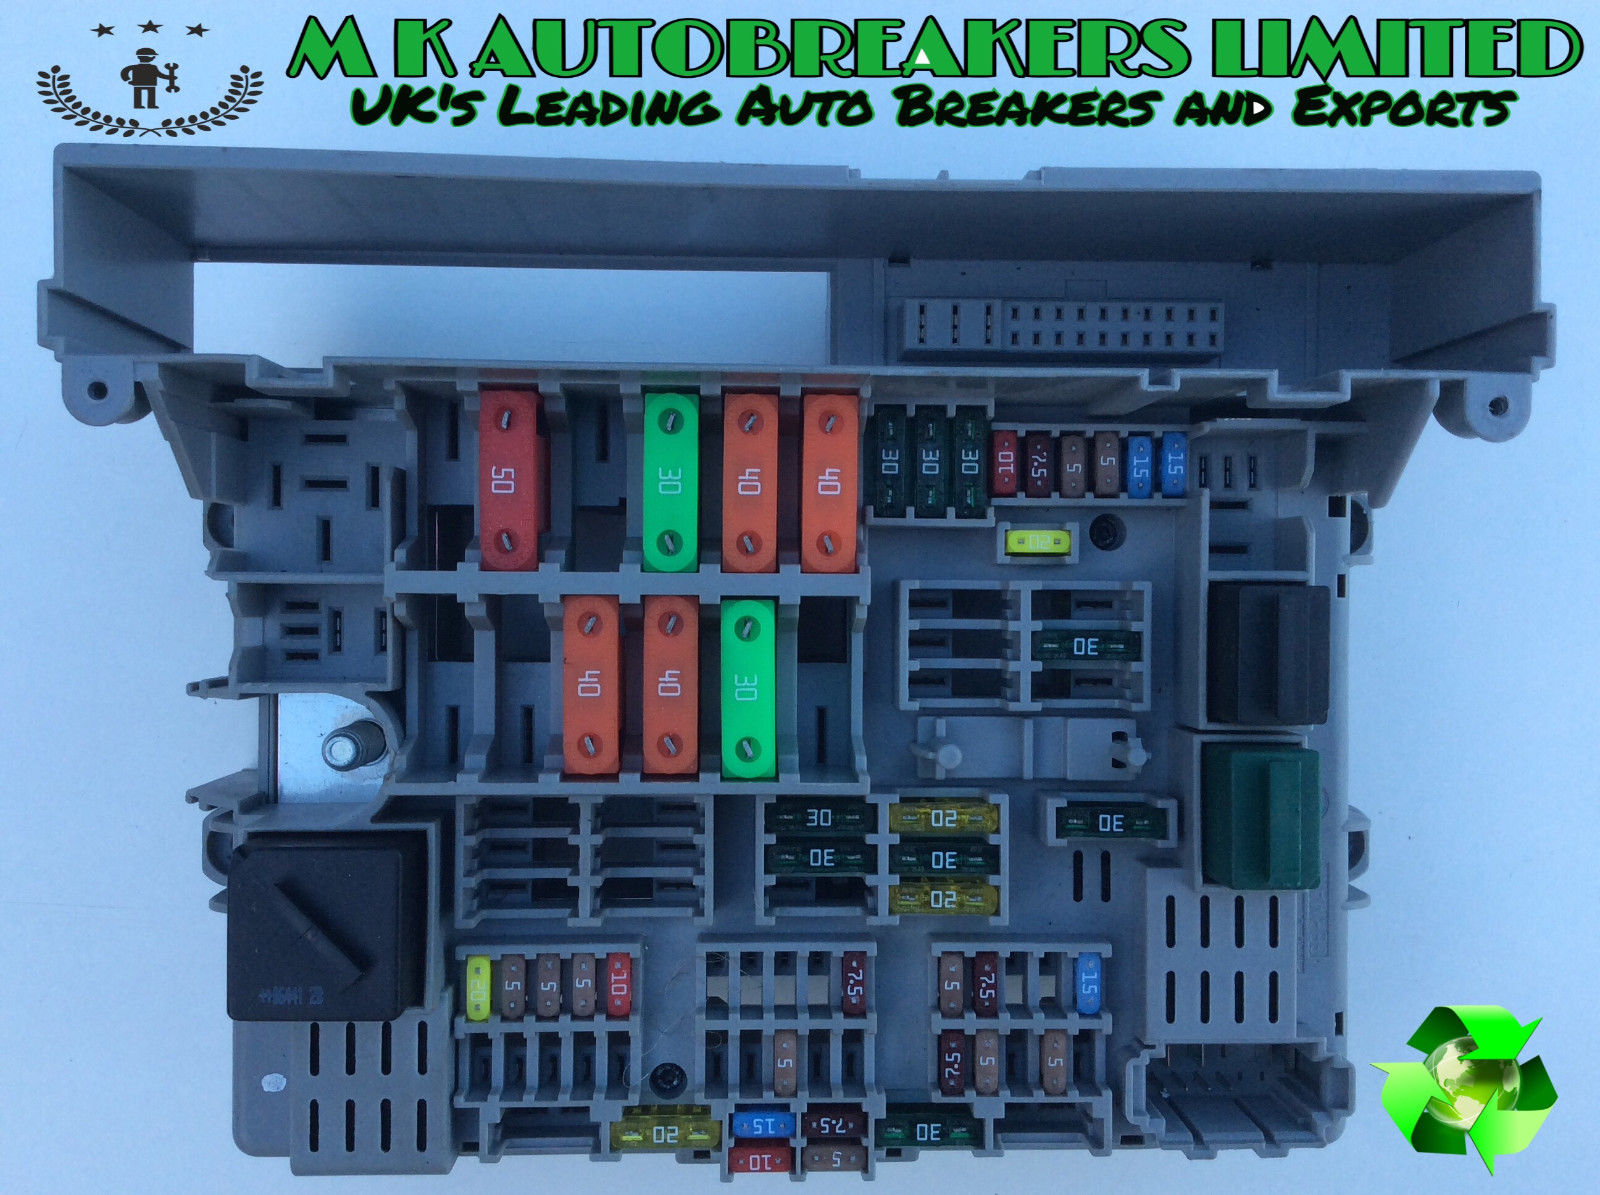 Fuse Box Switch Parts Completed Wiring Diagrams Automotive Uk Bmw 3 Series E90 E91 From 05 08 Front Breaking For Spare Rh Mkautobreakers Co Diagram Panel